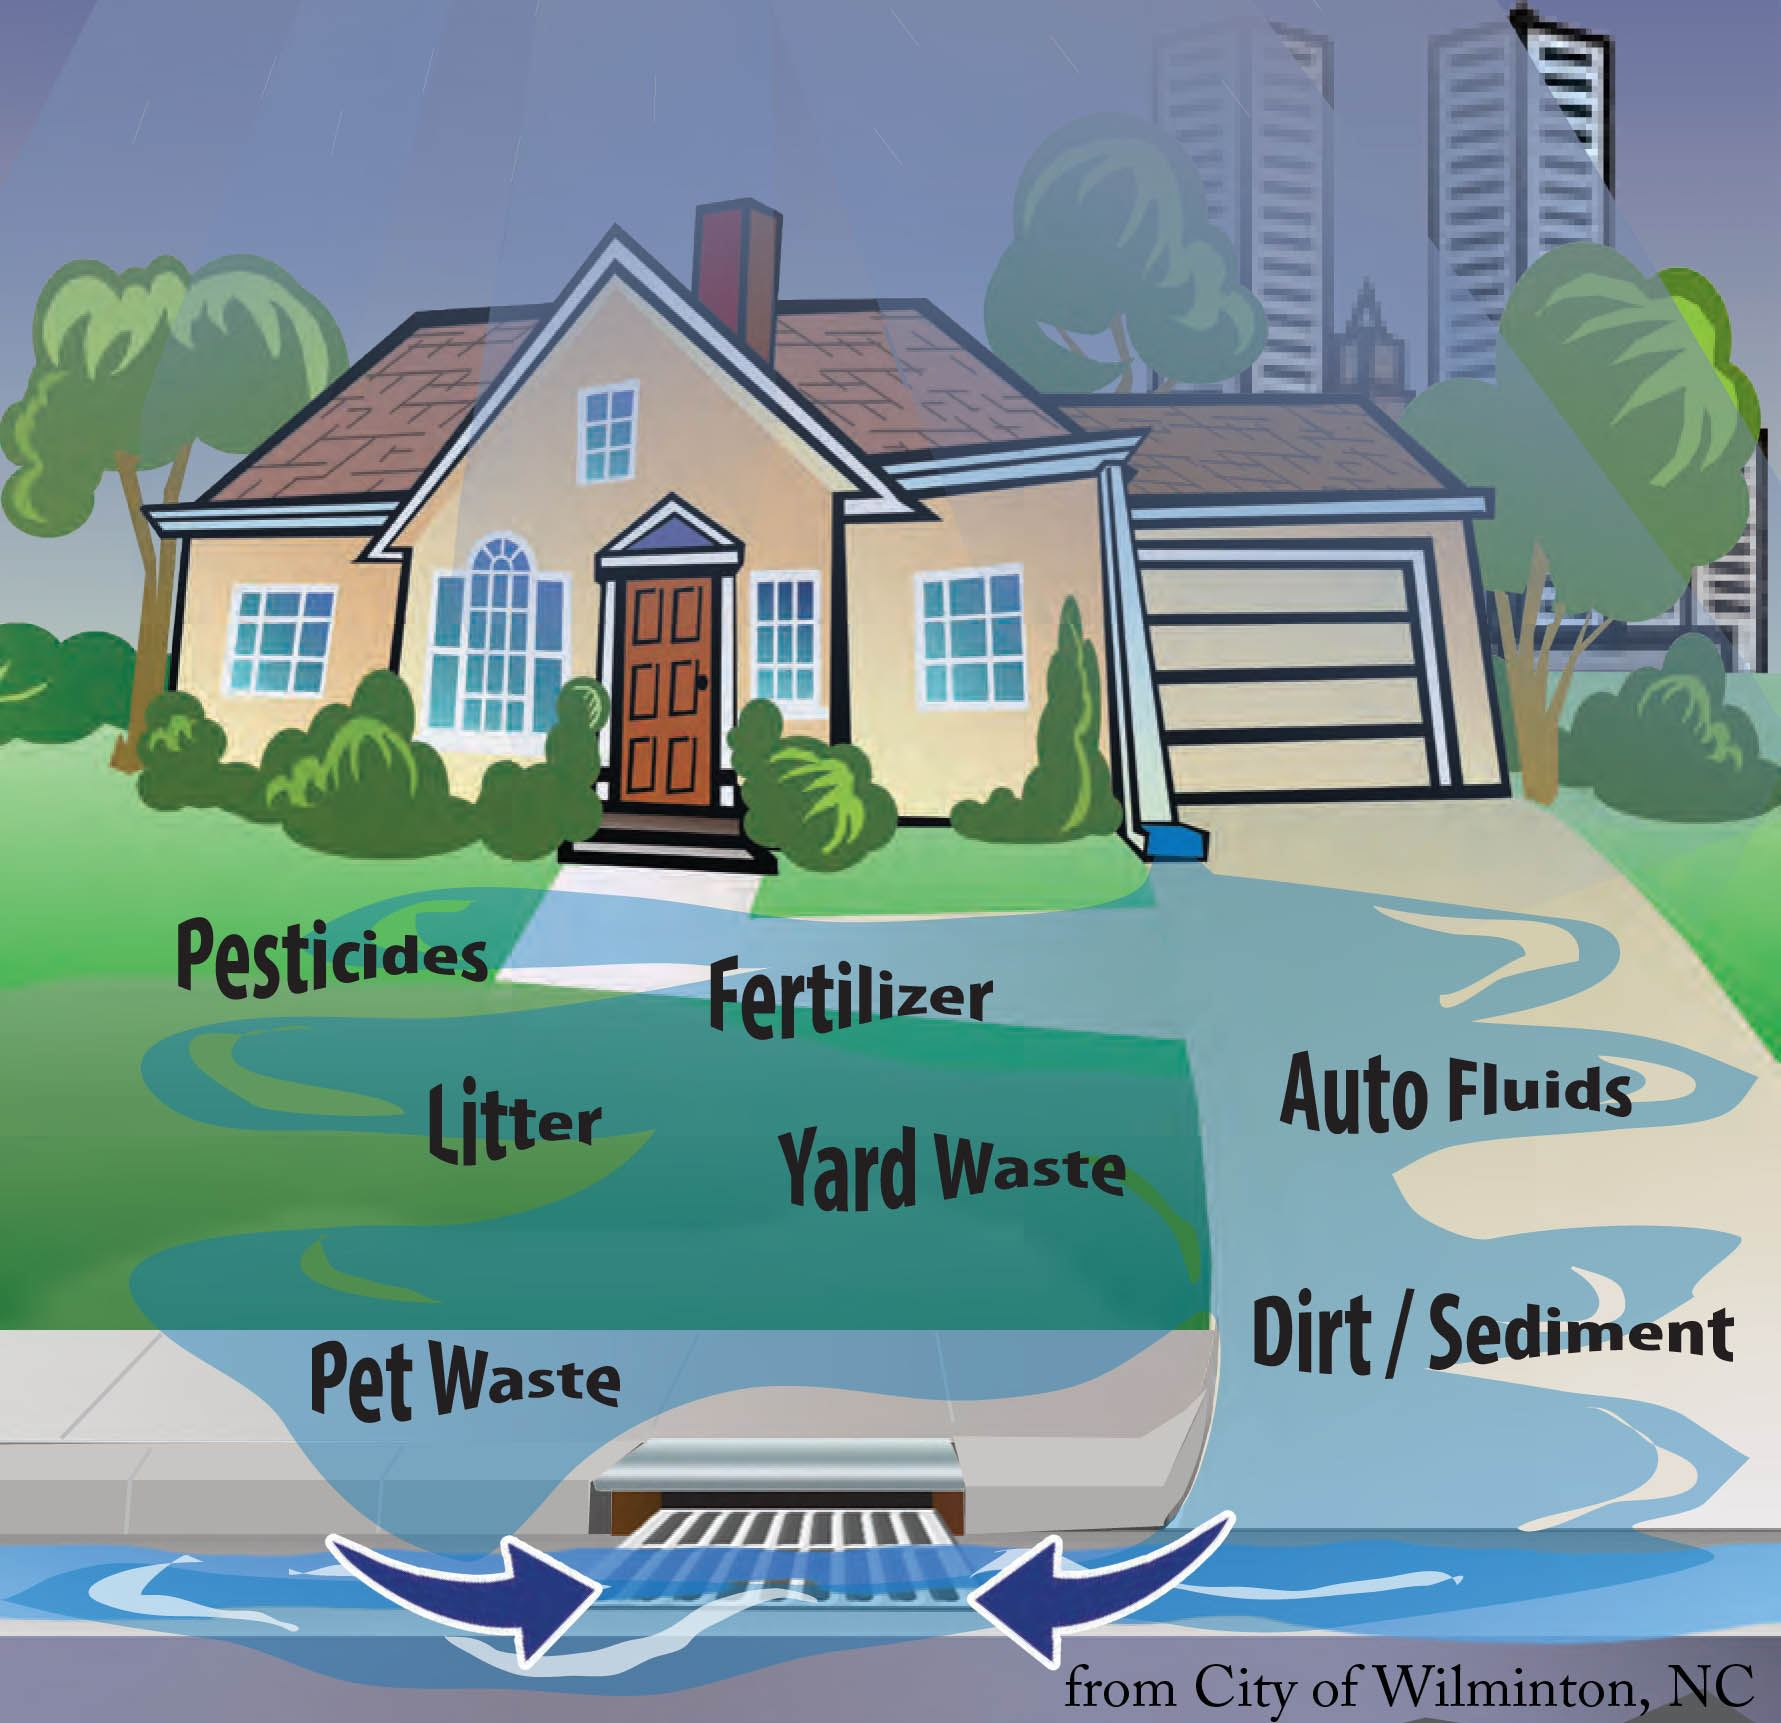 diagram of stormwater pollutants from a residential home making their way to a storm drain